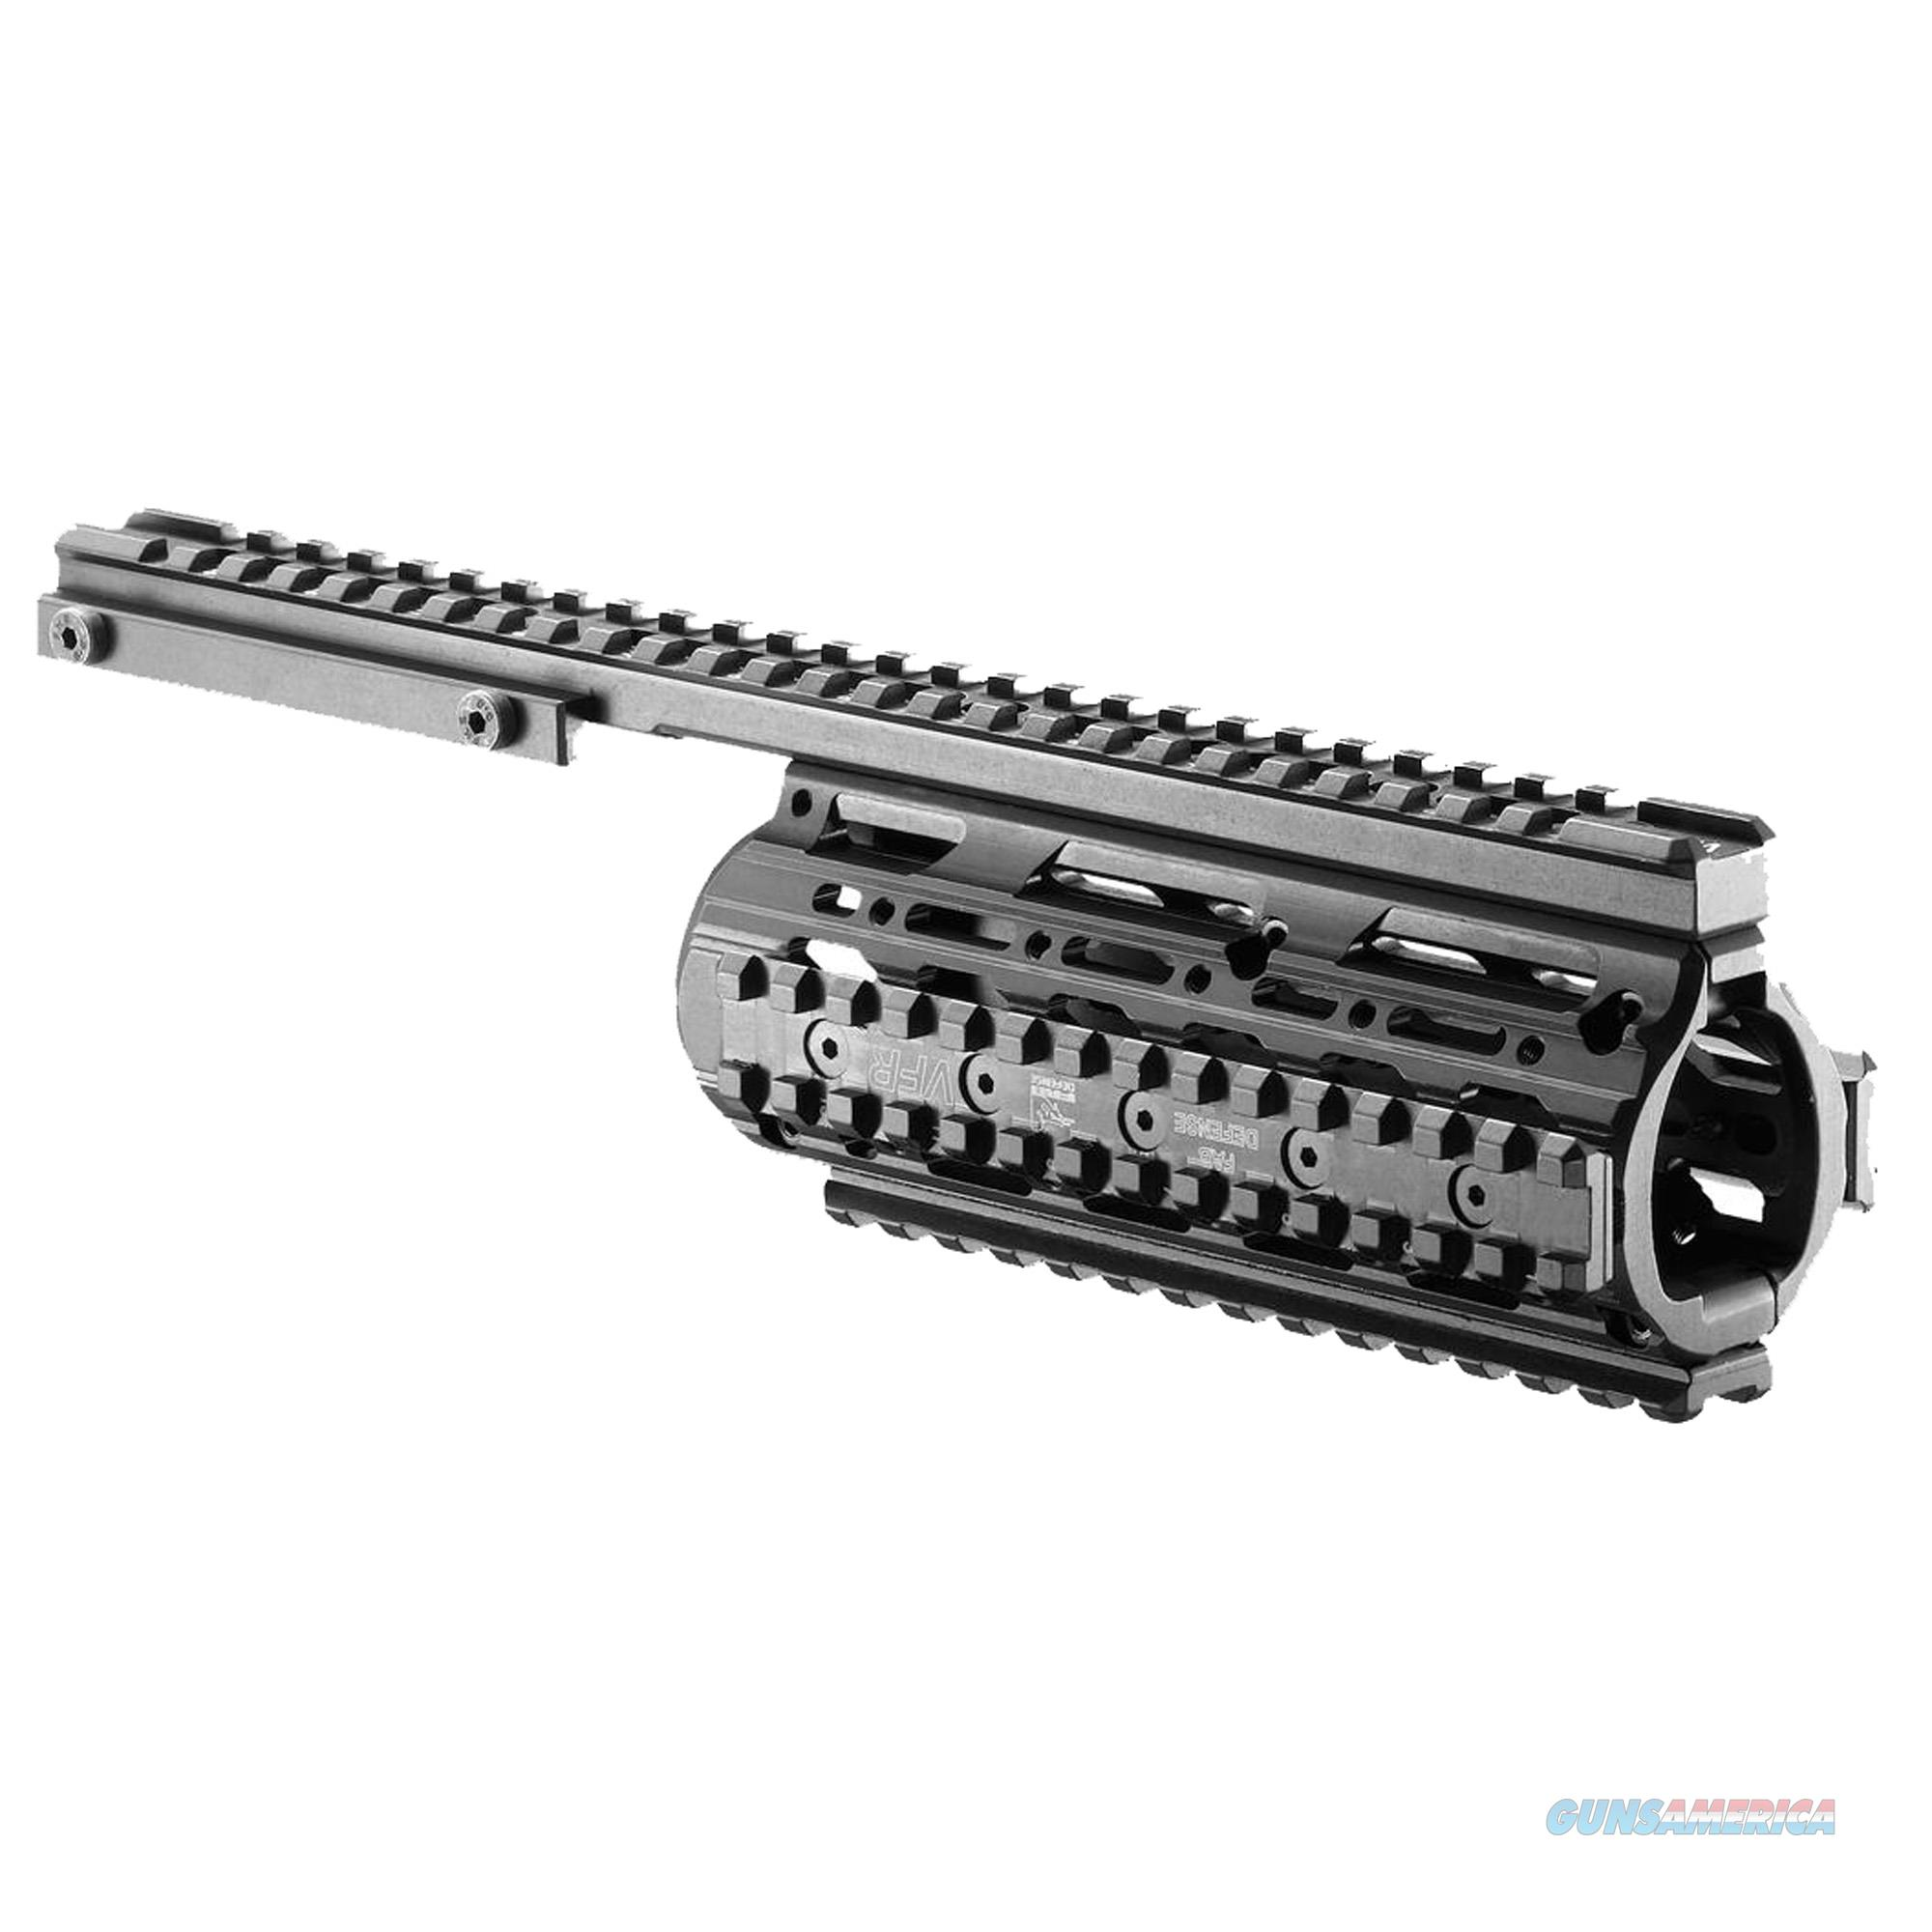 Mako Group Ar15/ M4 Modular Aluminum Rail System Flat Top VFR  Non-Guns > Scopes/Mounts/Rings & Optics > Mounts > Other